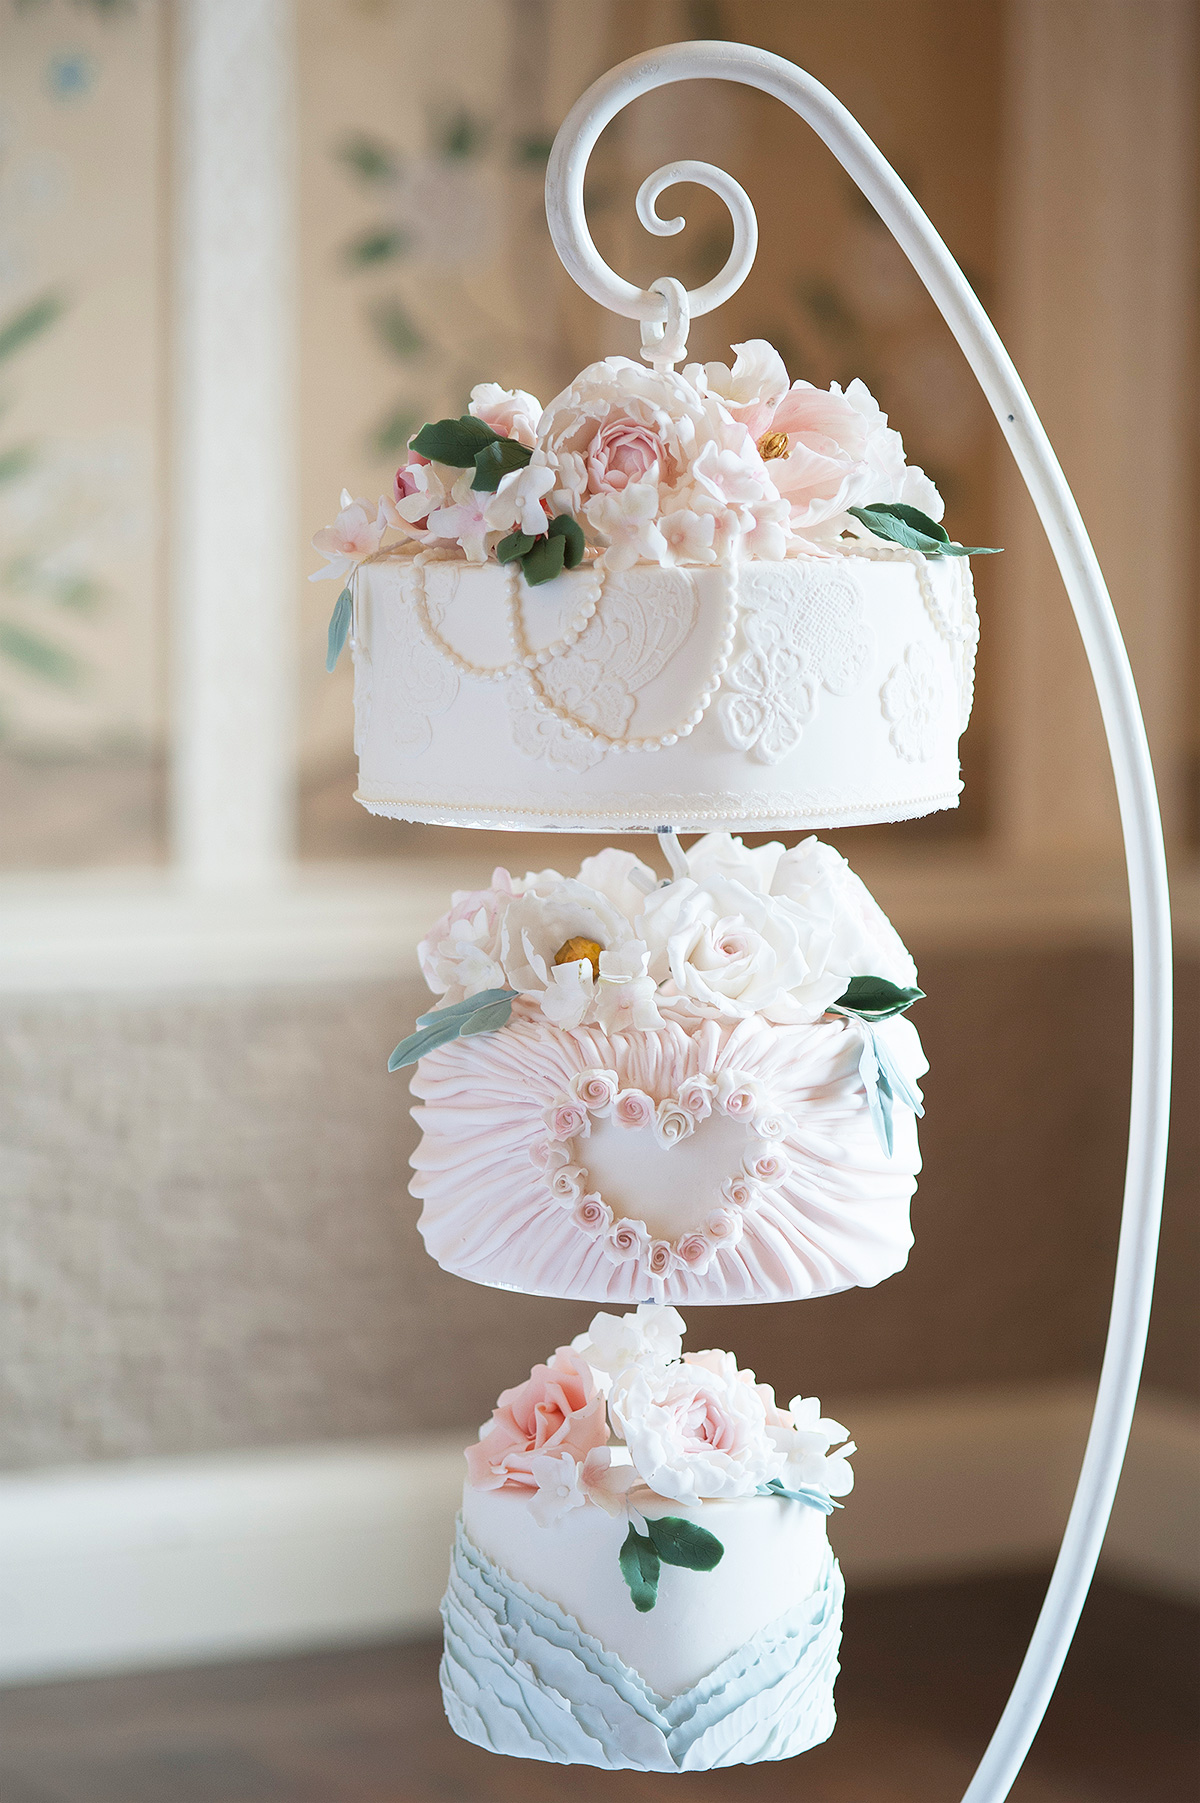 Suppliers We Love - Gifted Heart Cakes - Tarnia Williams | Luxury ...